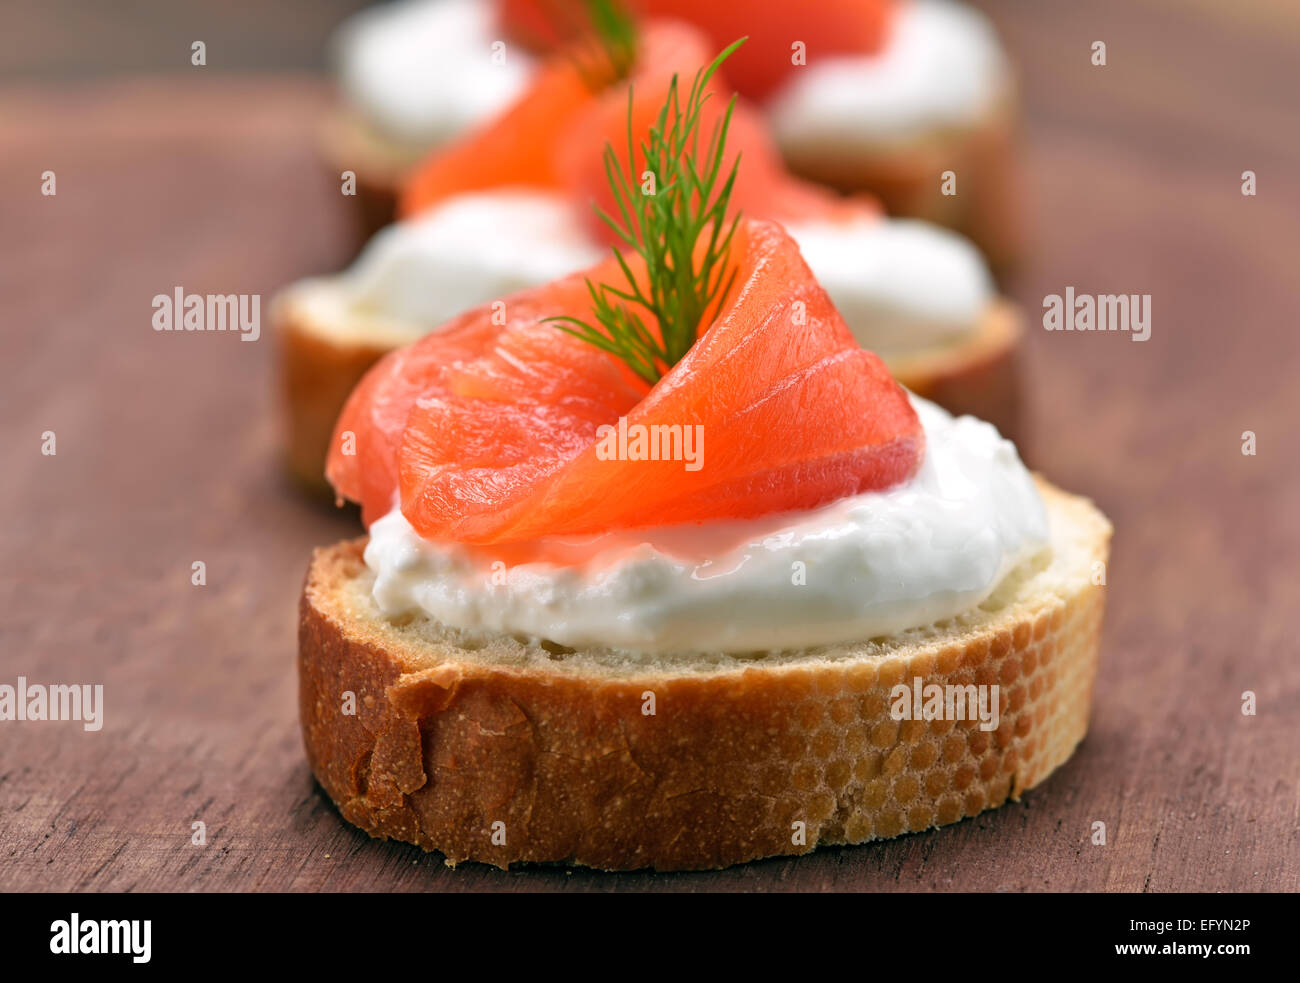 Sandwiches with salmon on wooden cutting board, close up view - Stock Image